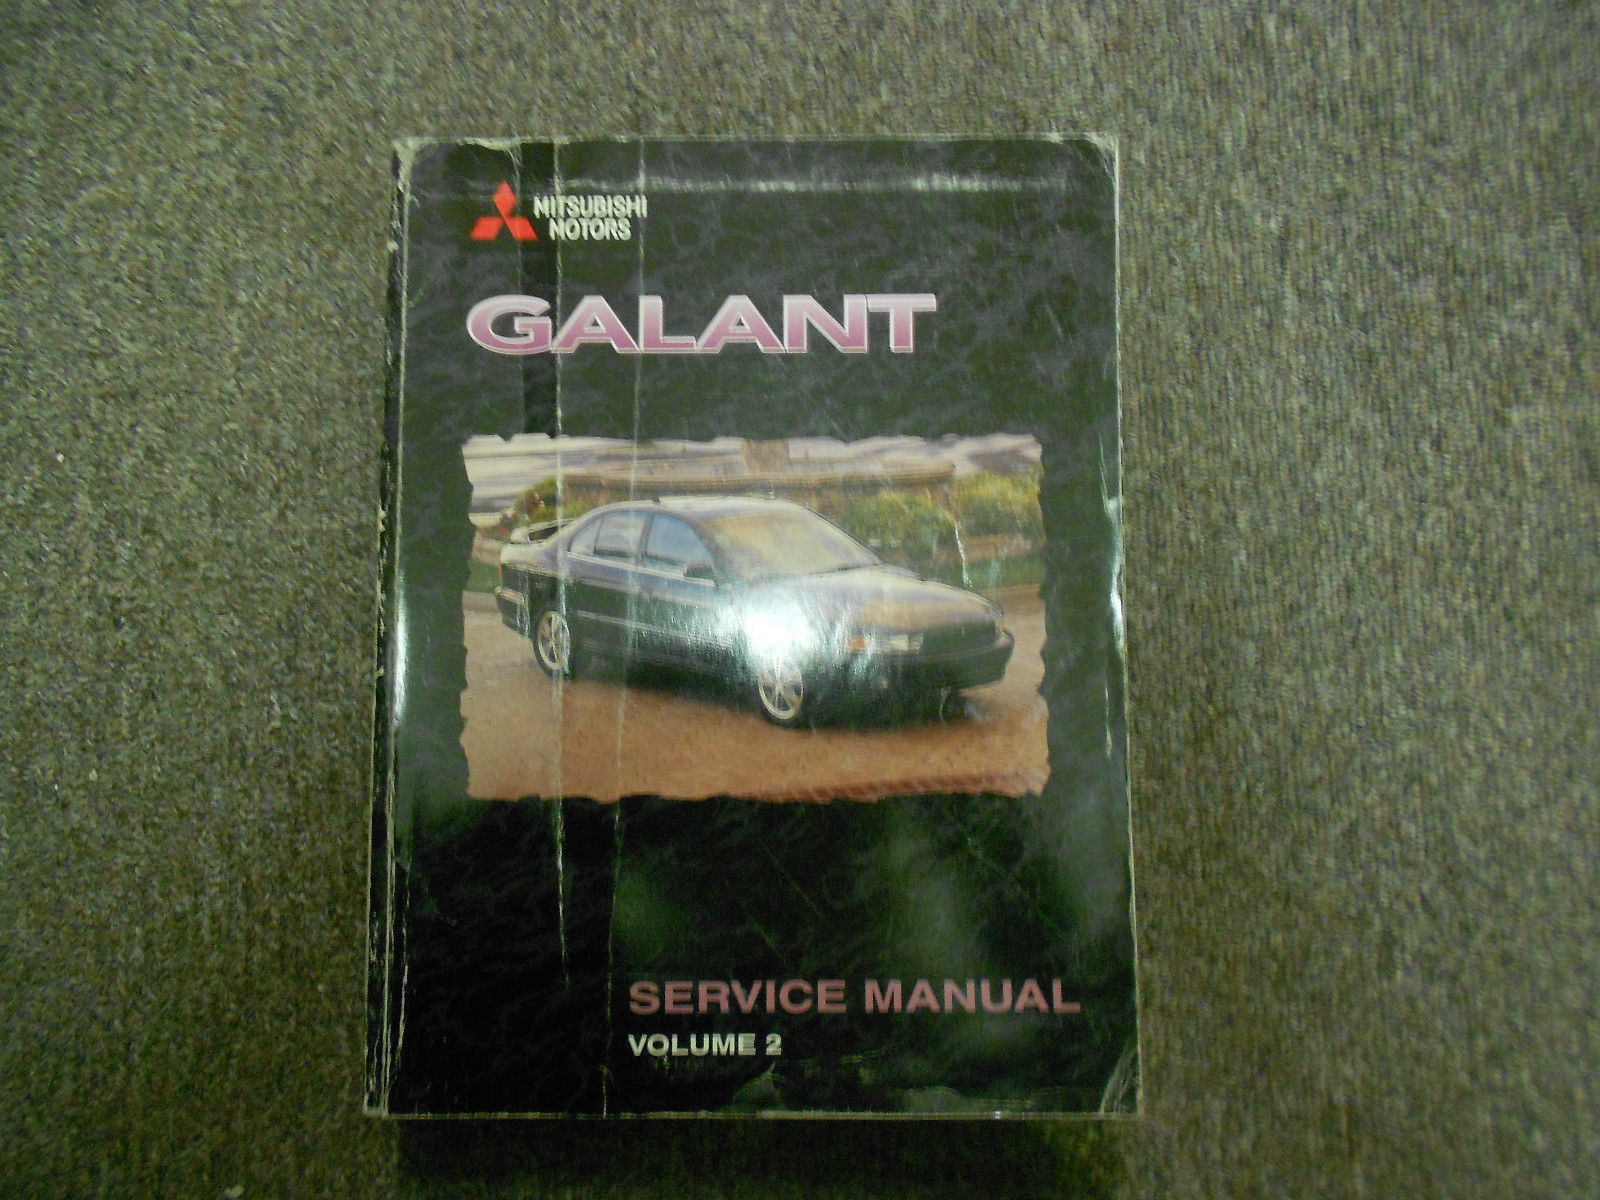 1999 MITSUBISHI Galant Service Repair Shop Manual VOL 2 FACTORY OEM BOOK 99  DEAL